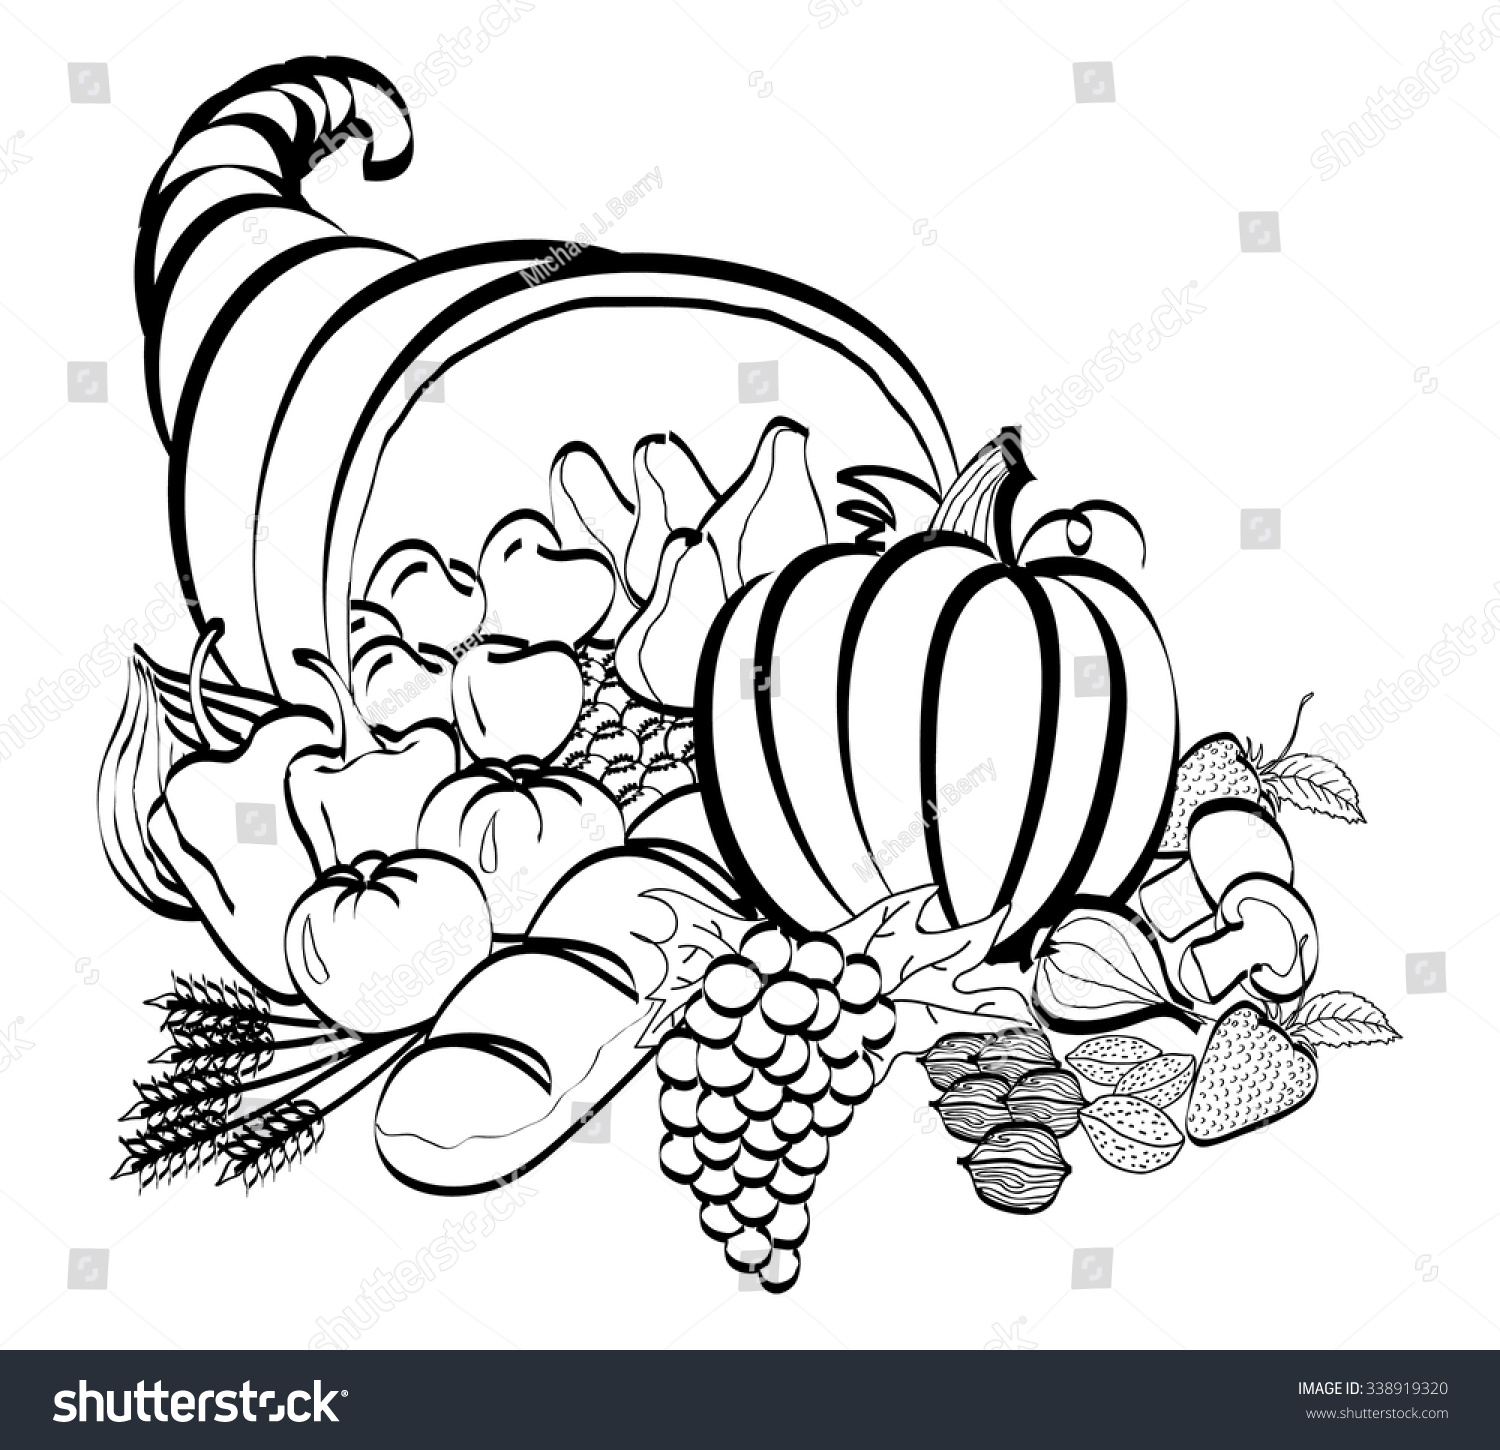 Line Drawing Newspaper : Cornucopia black white line drawing use stock vector